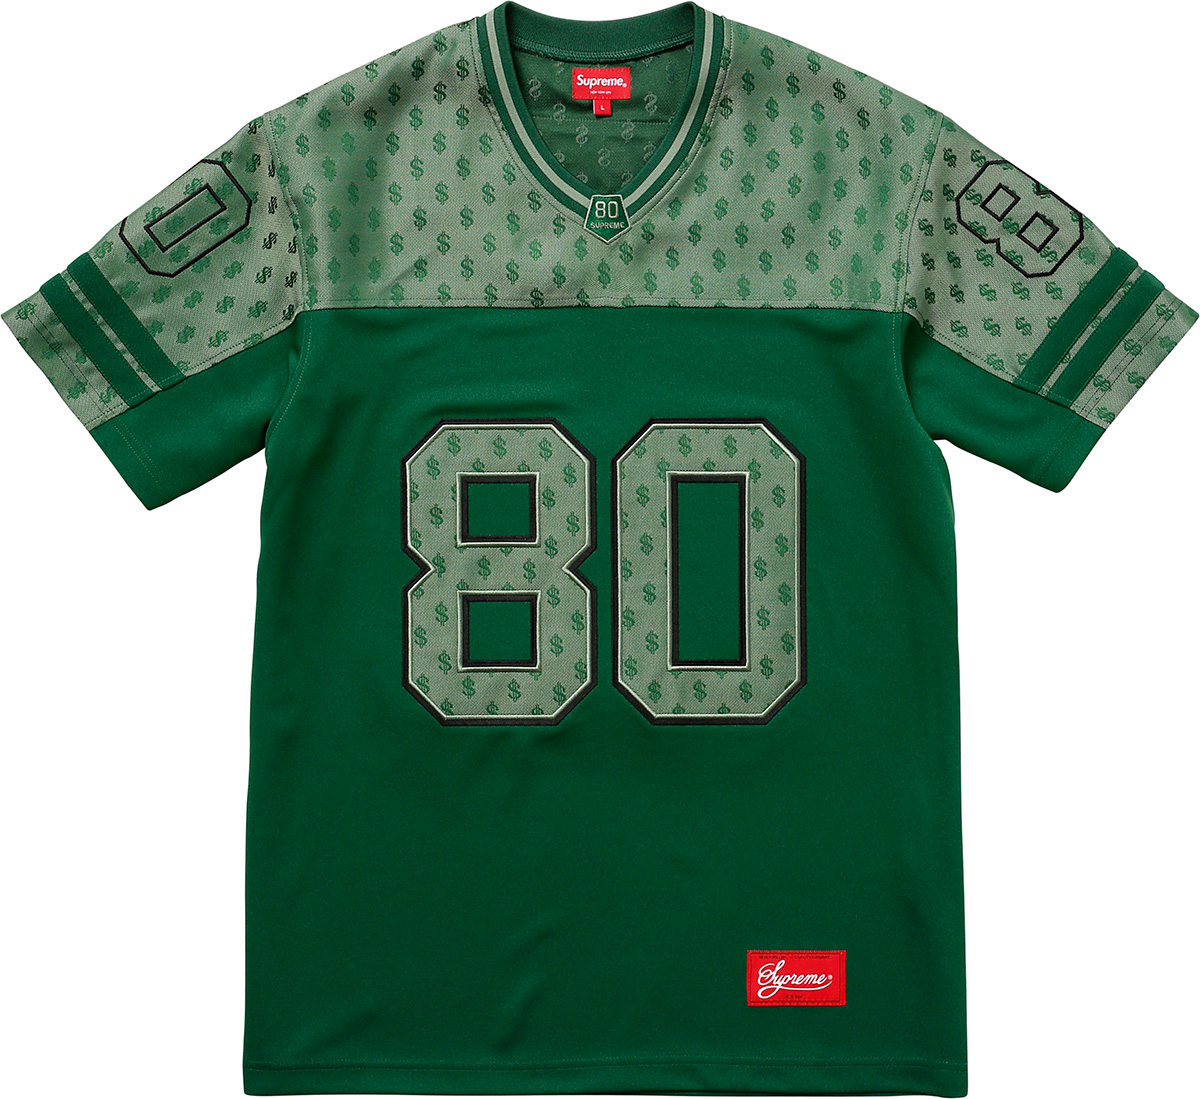 supreme-18ss-spring-summer-monogram-football-jersey